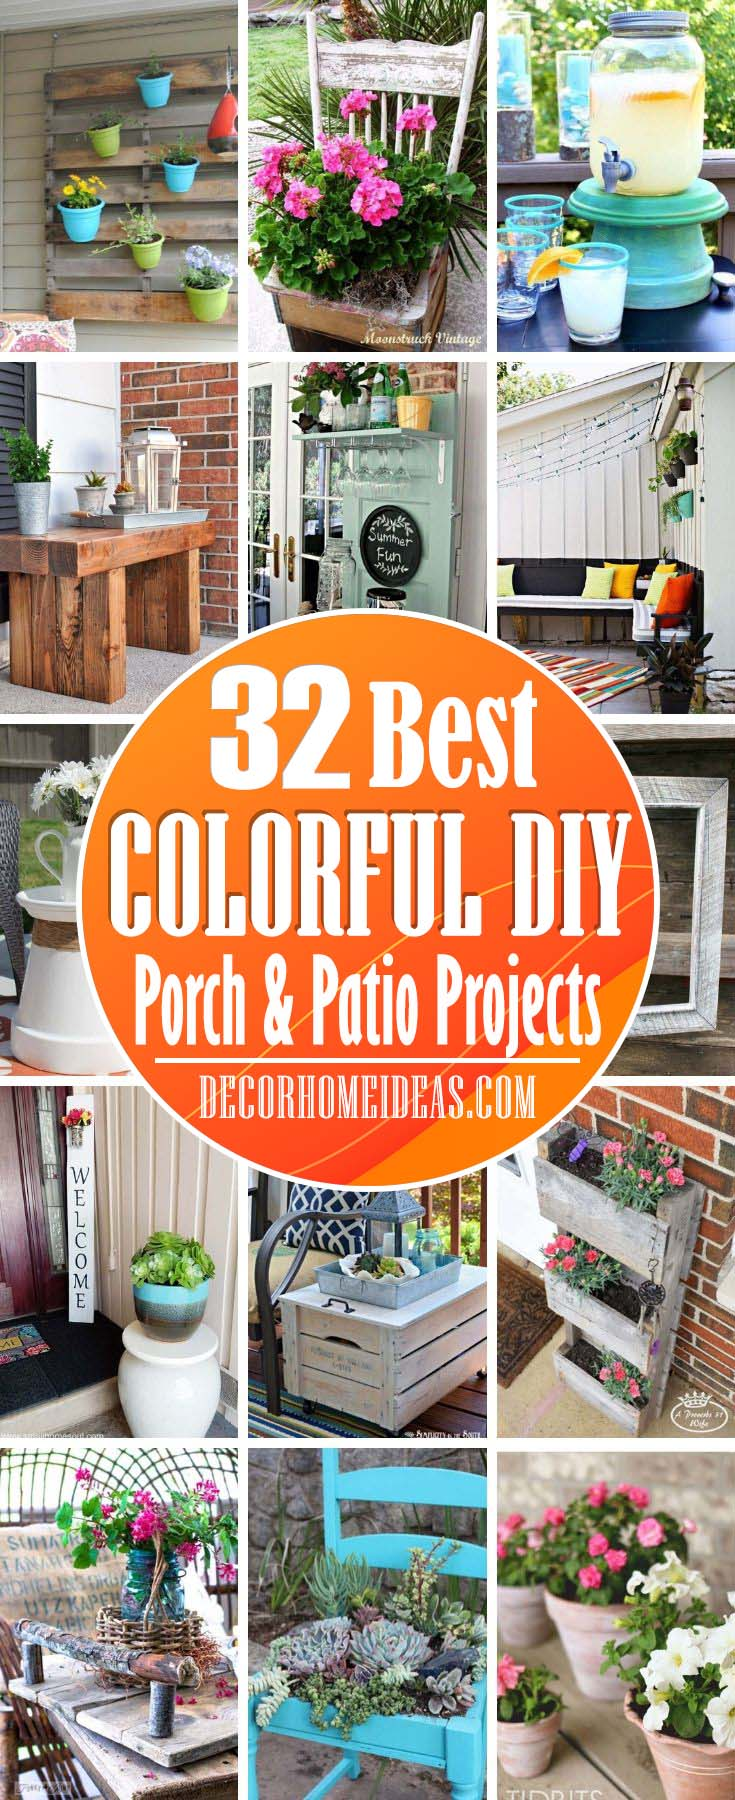 DIY Colorful Porch And Patio Projects. Add some color to your porch or patio with these colorful DIY projects that are cheap and easy to do. You'll be amazed how beautiful they are! #diy #porch #patio #colorful #decorhomeideas